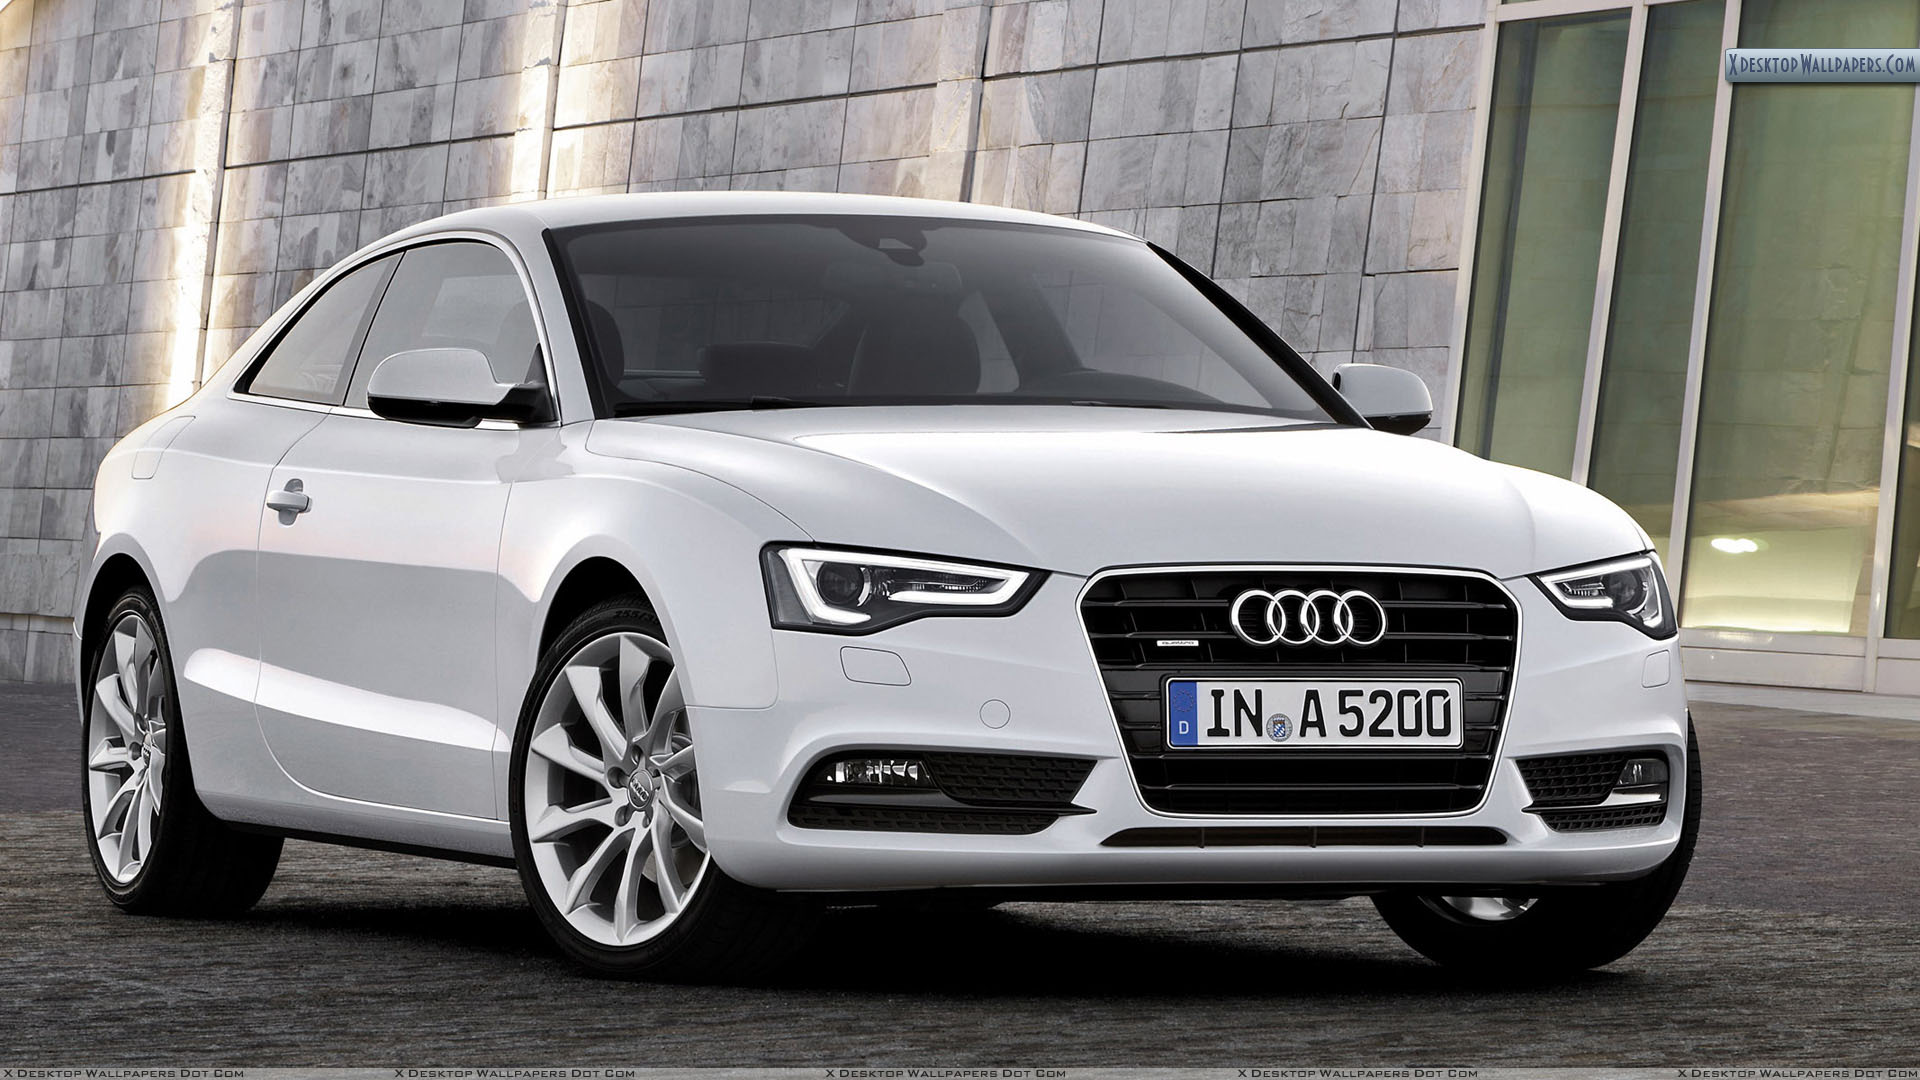 Audi A5 Coupe 2012 Front Picture Wallpaper